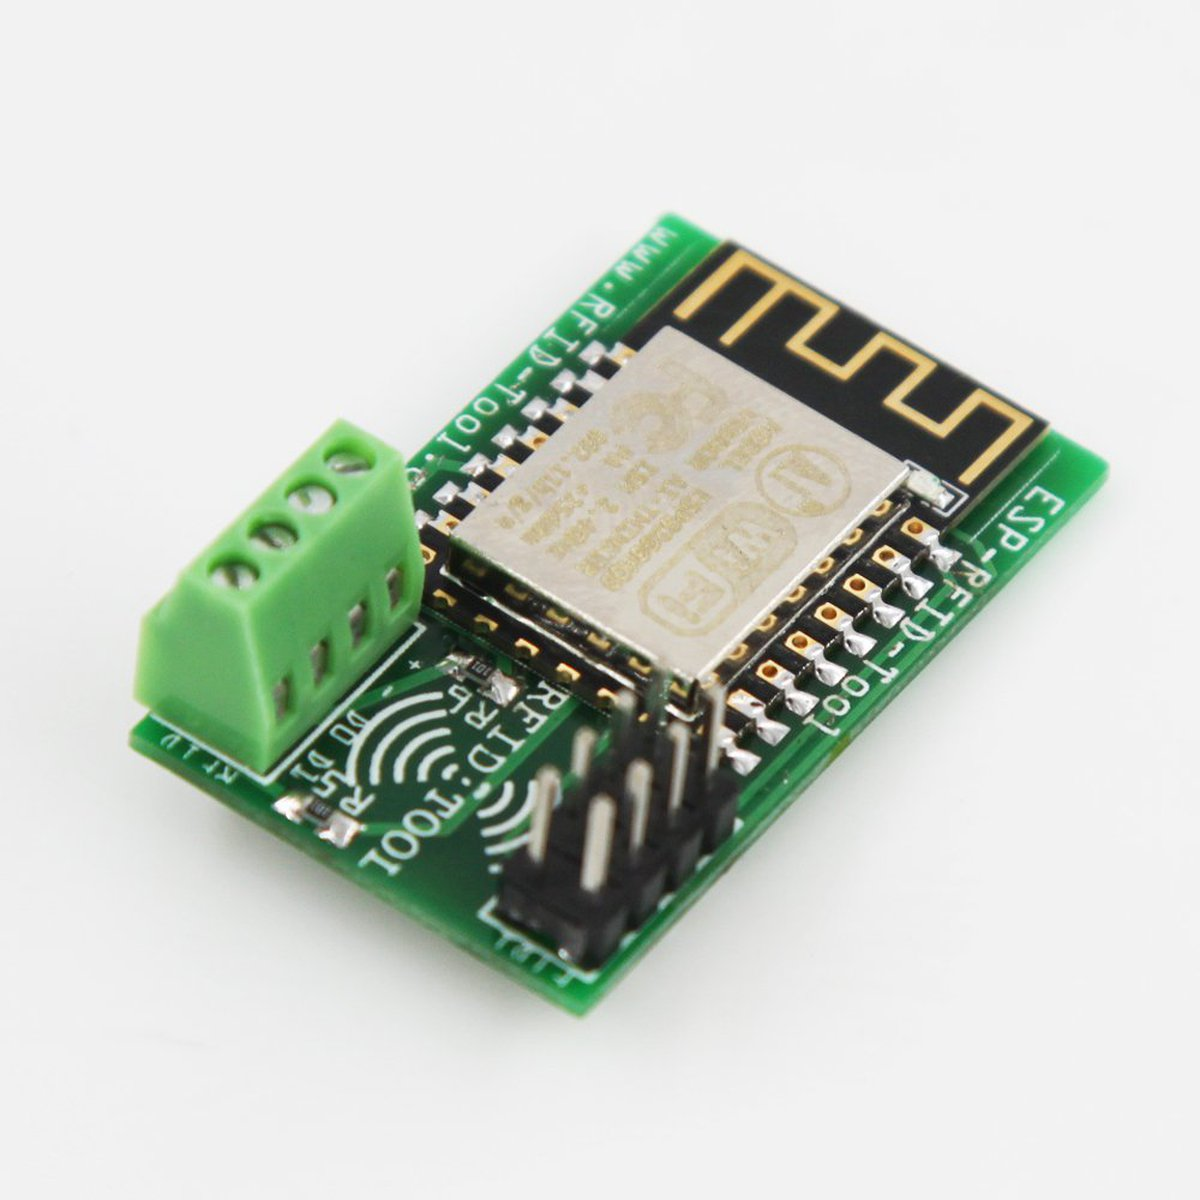 ESP RFID Tool from AprilBrother on Tindie